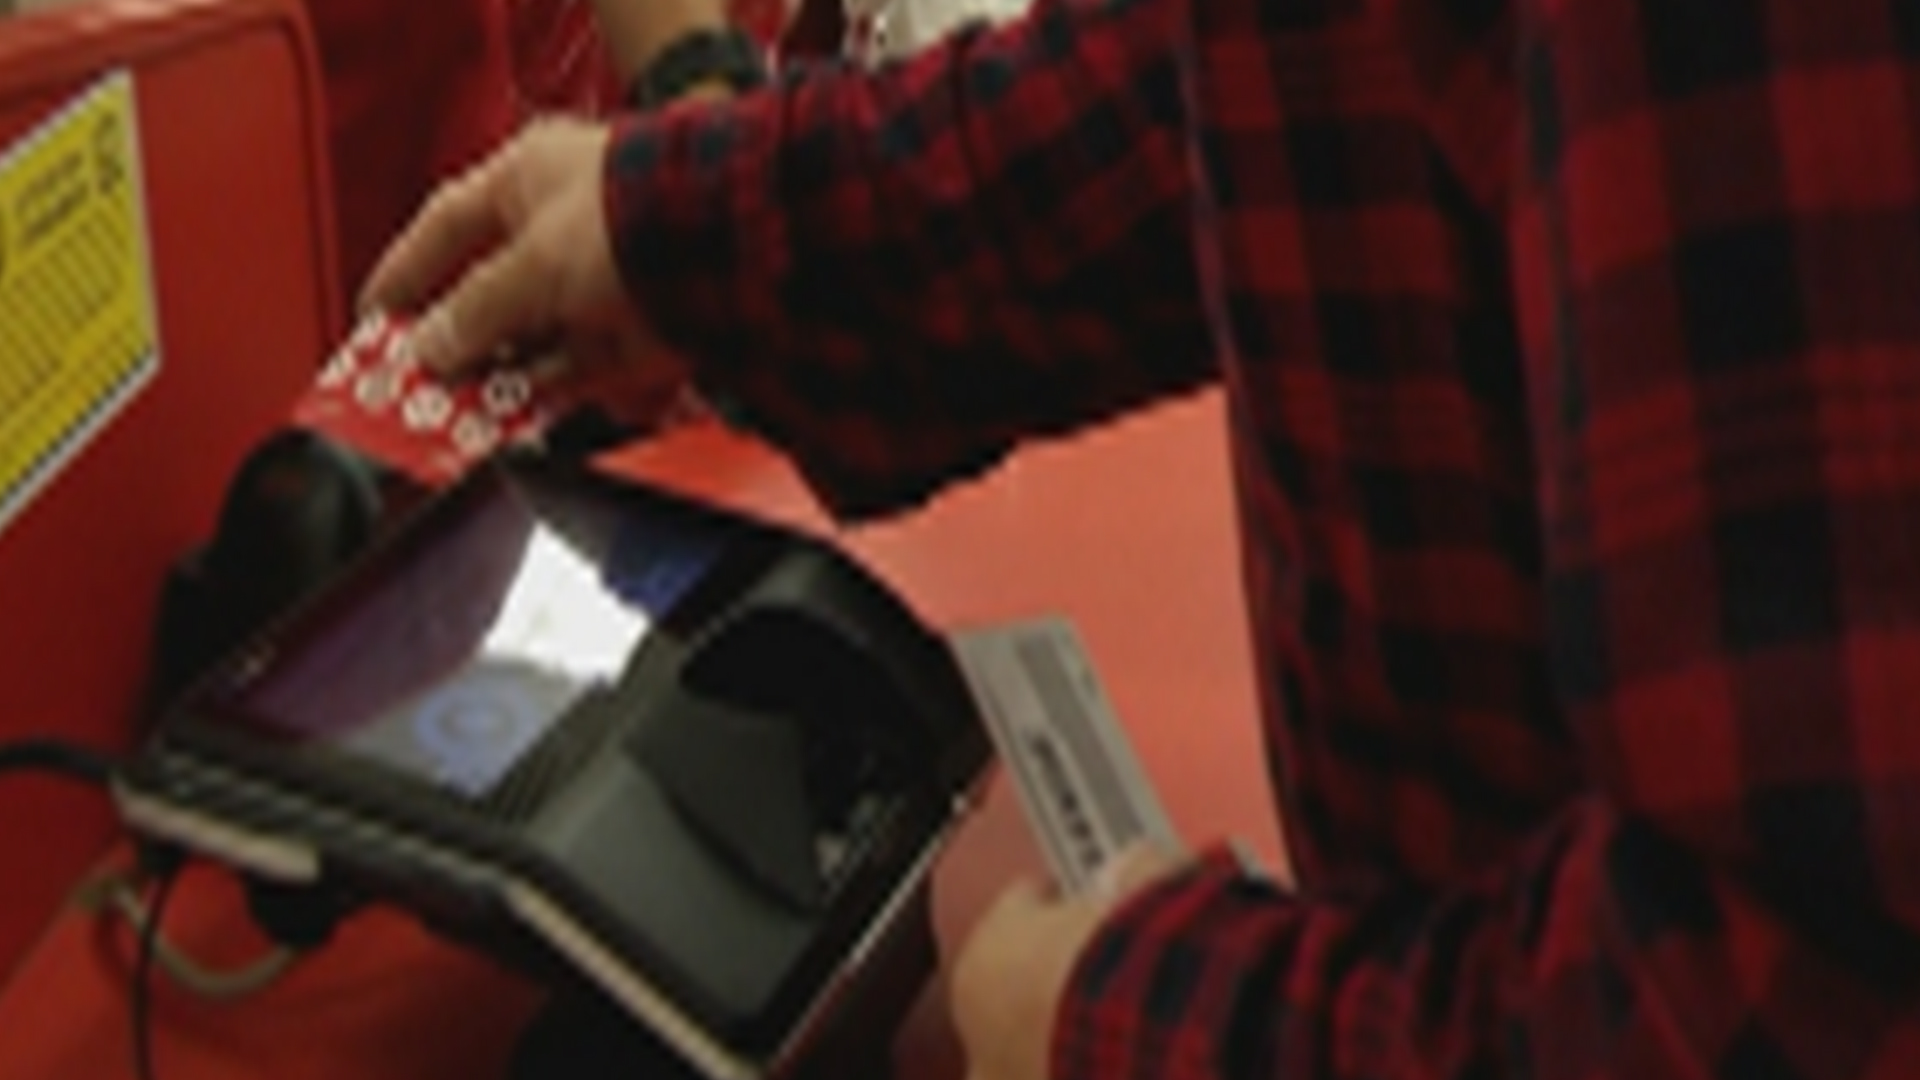 Use your credit card at Target? Here's what to do if your data might have been swiped